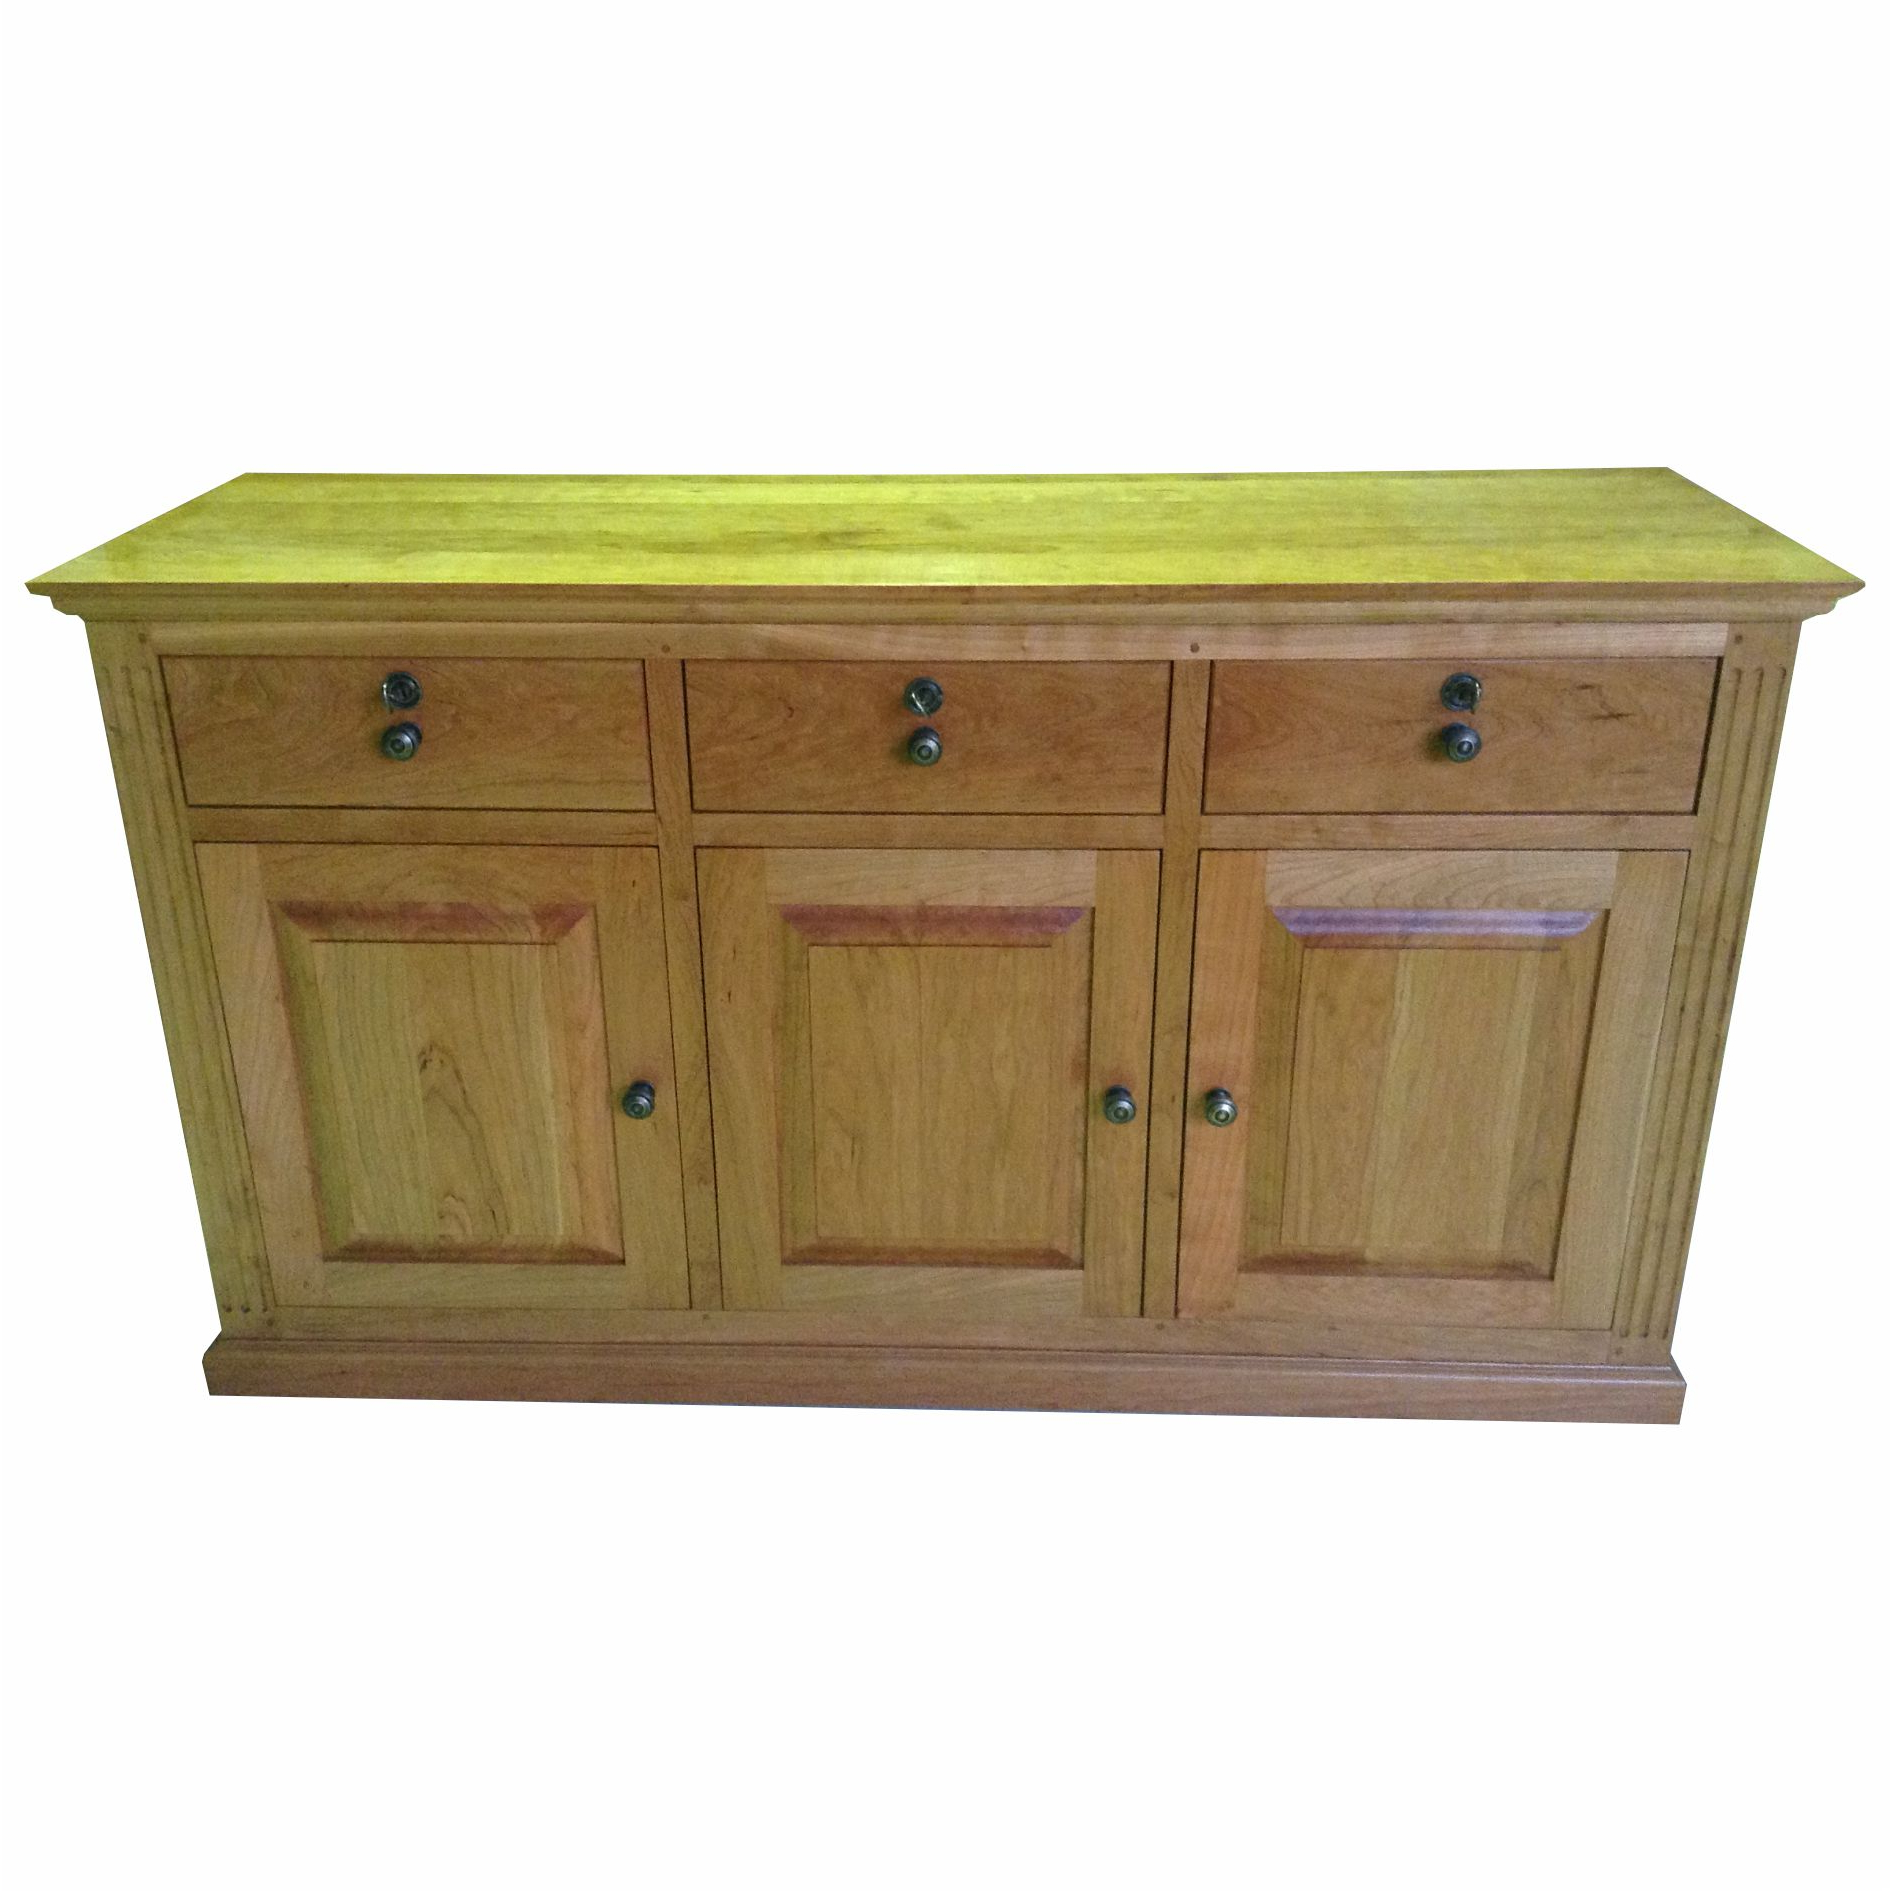 Widely Used Stella Sideboards Regarding Classic Sideboards & Server (5 Sizes) (Gallery 19 of 20)